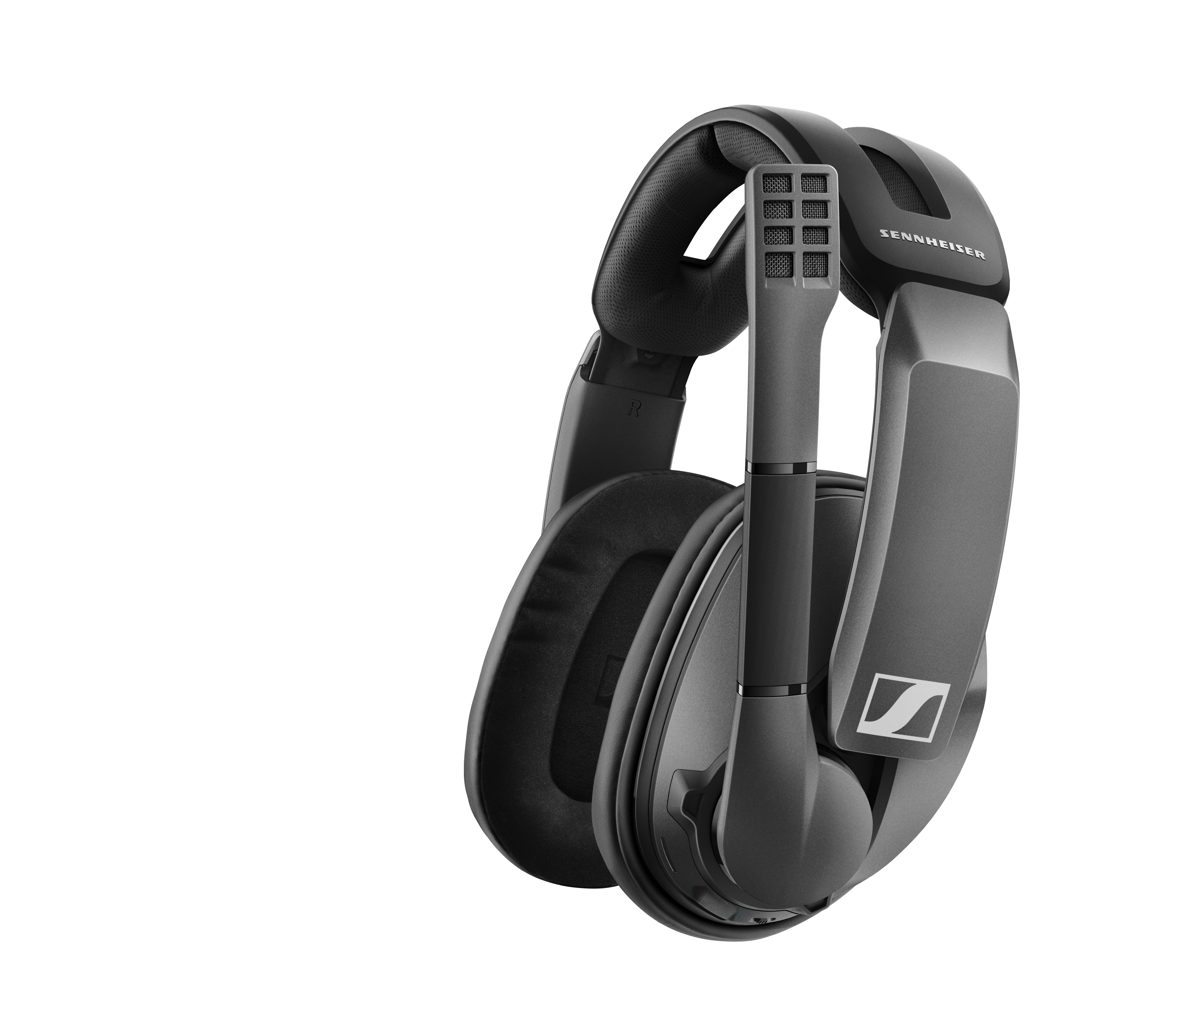 The new Sennheiser GSP 370 features a low-latency connection as well as a long-lasting, integrated rechargeable battery. This results in a stable and lag-free sound withanexceptional battery lifeof up to 100 hours.